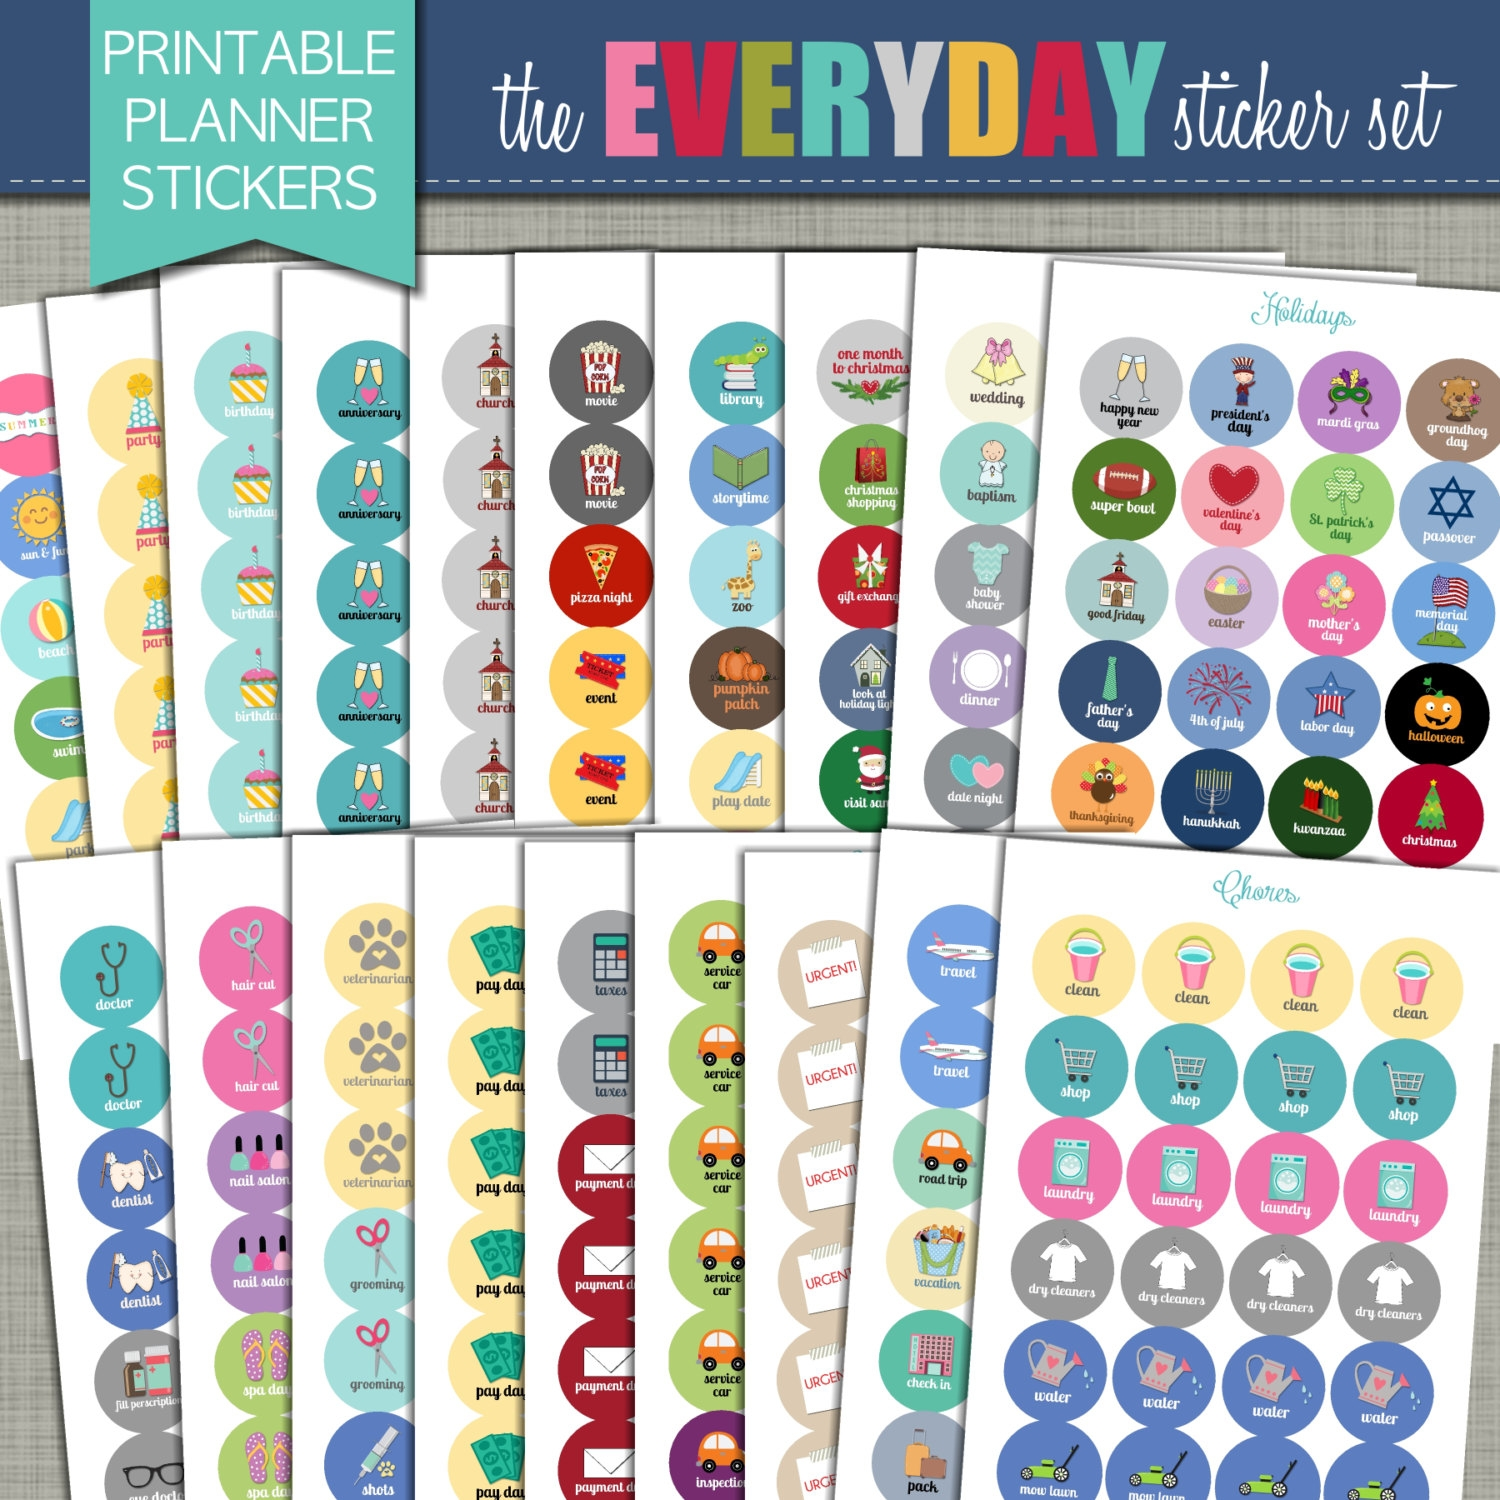 New Printable Planner Stickers Everyday Set 343abry